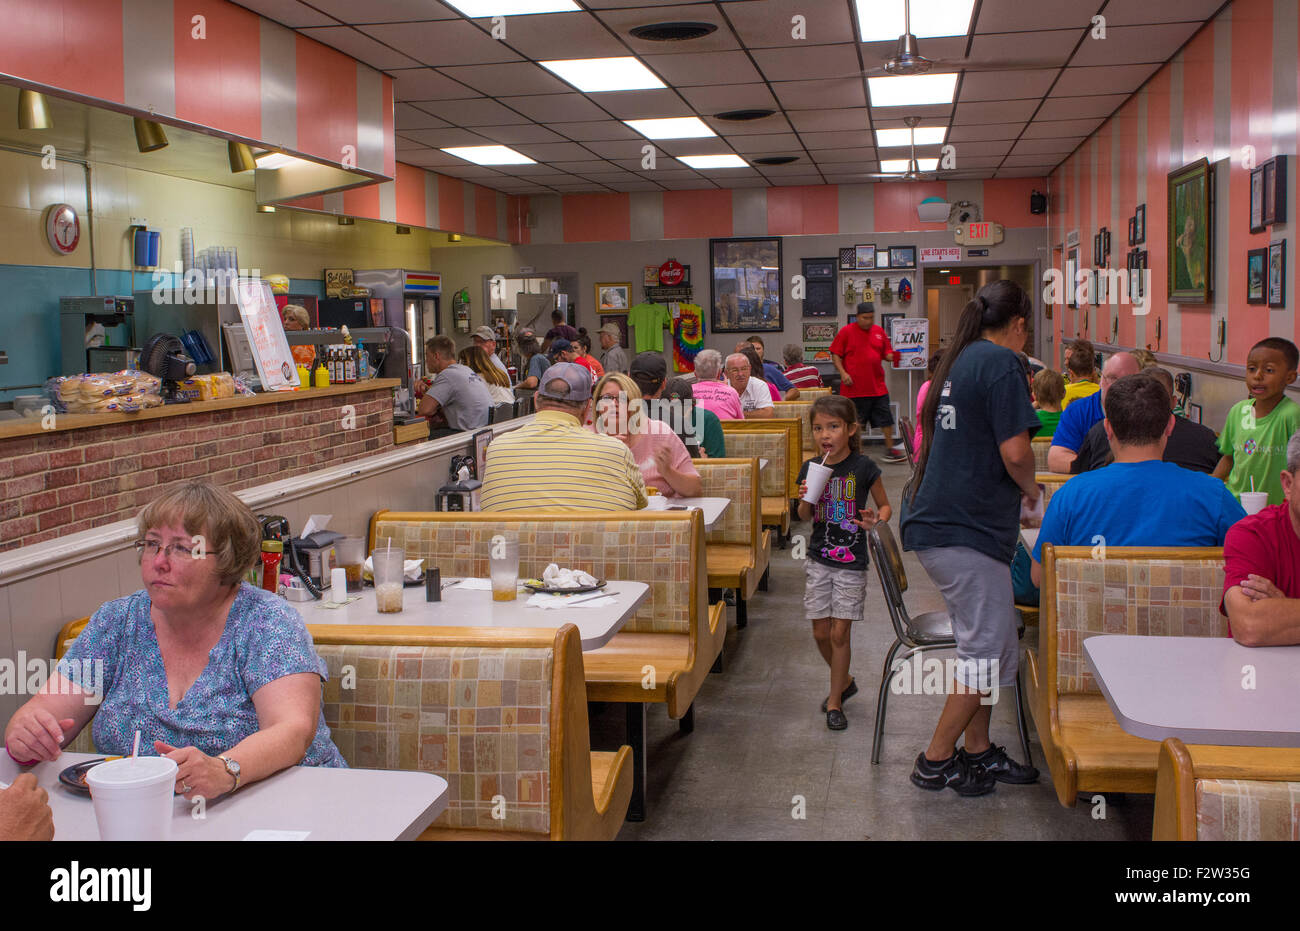 Shawnee Oklahoma OK famous old restaurant Hamburger King built in 1927 with phones at tables to order food Stock Photo